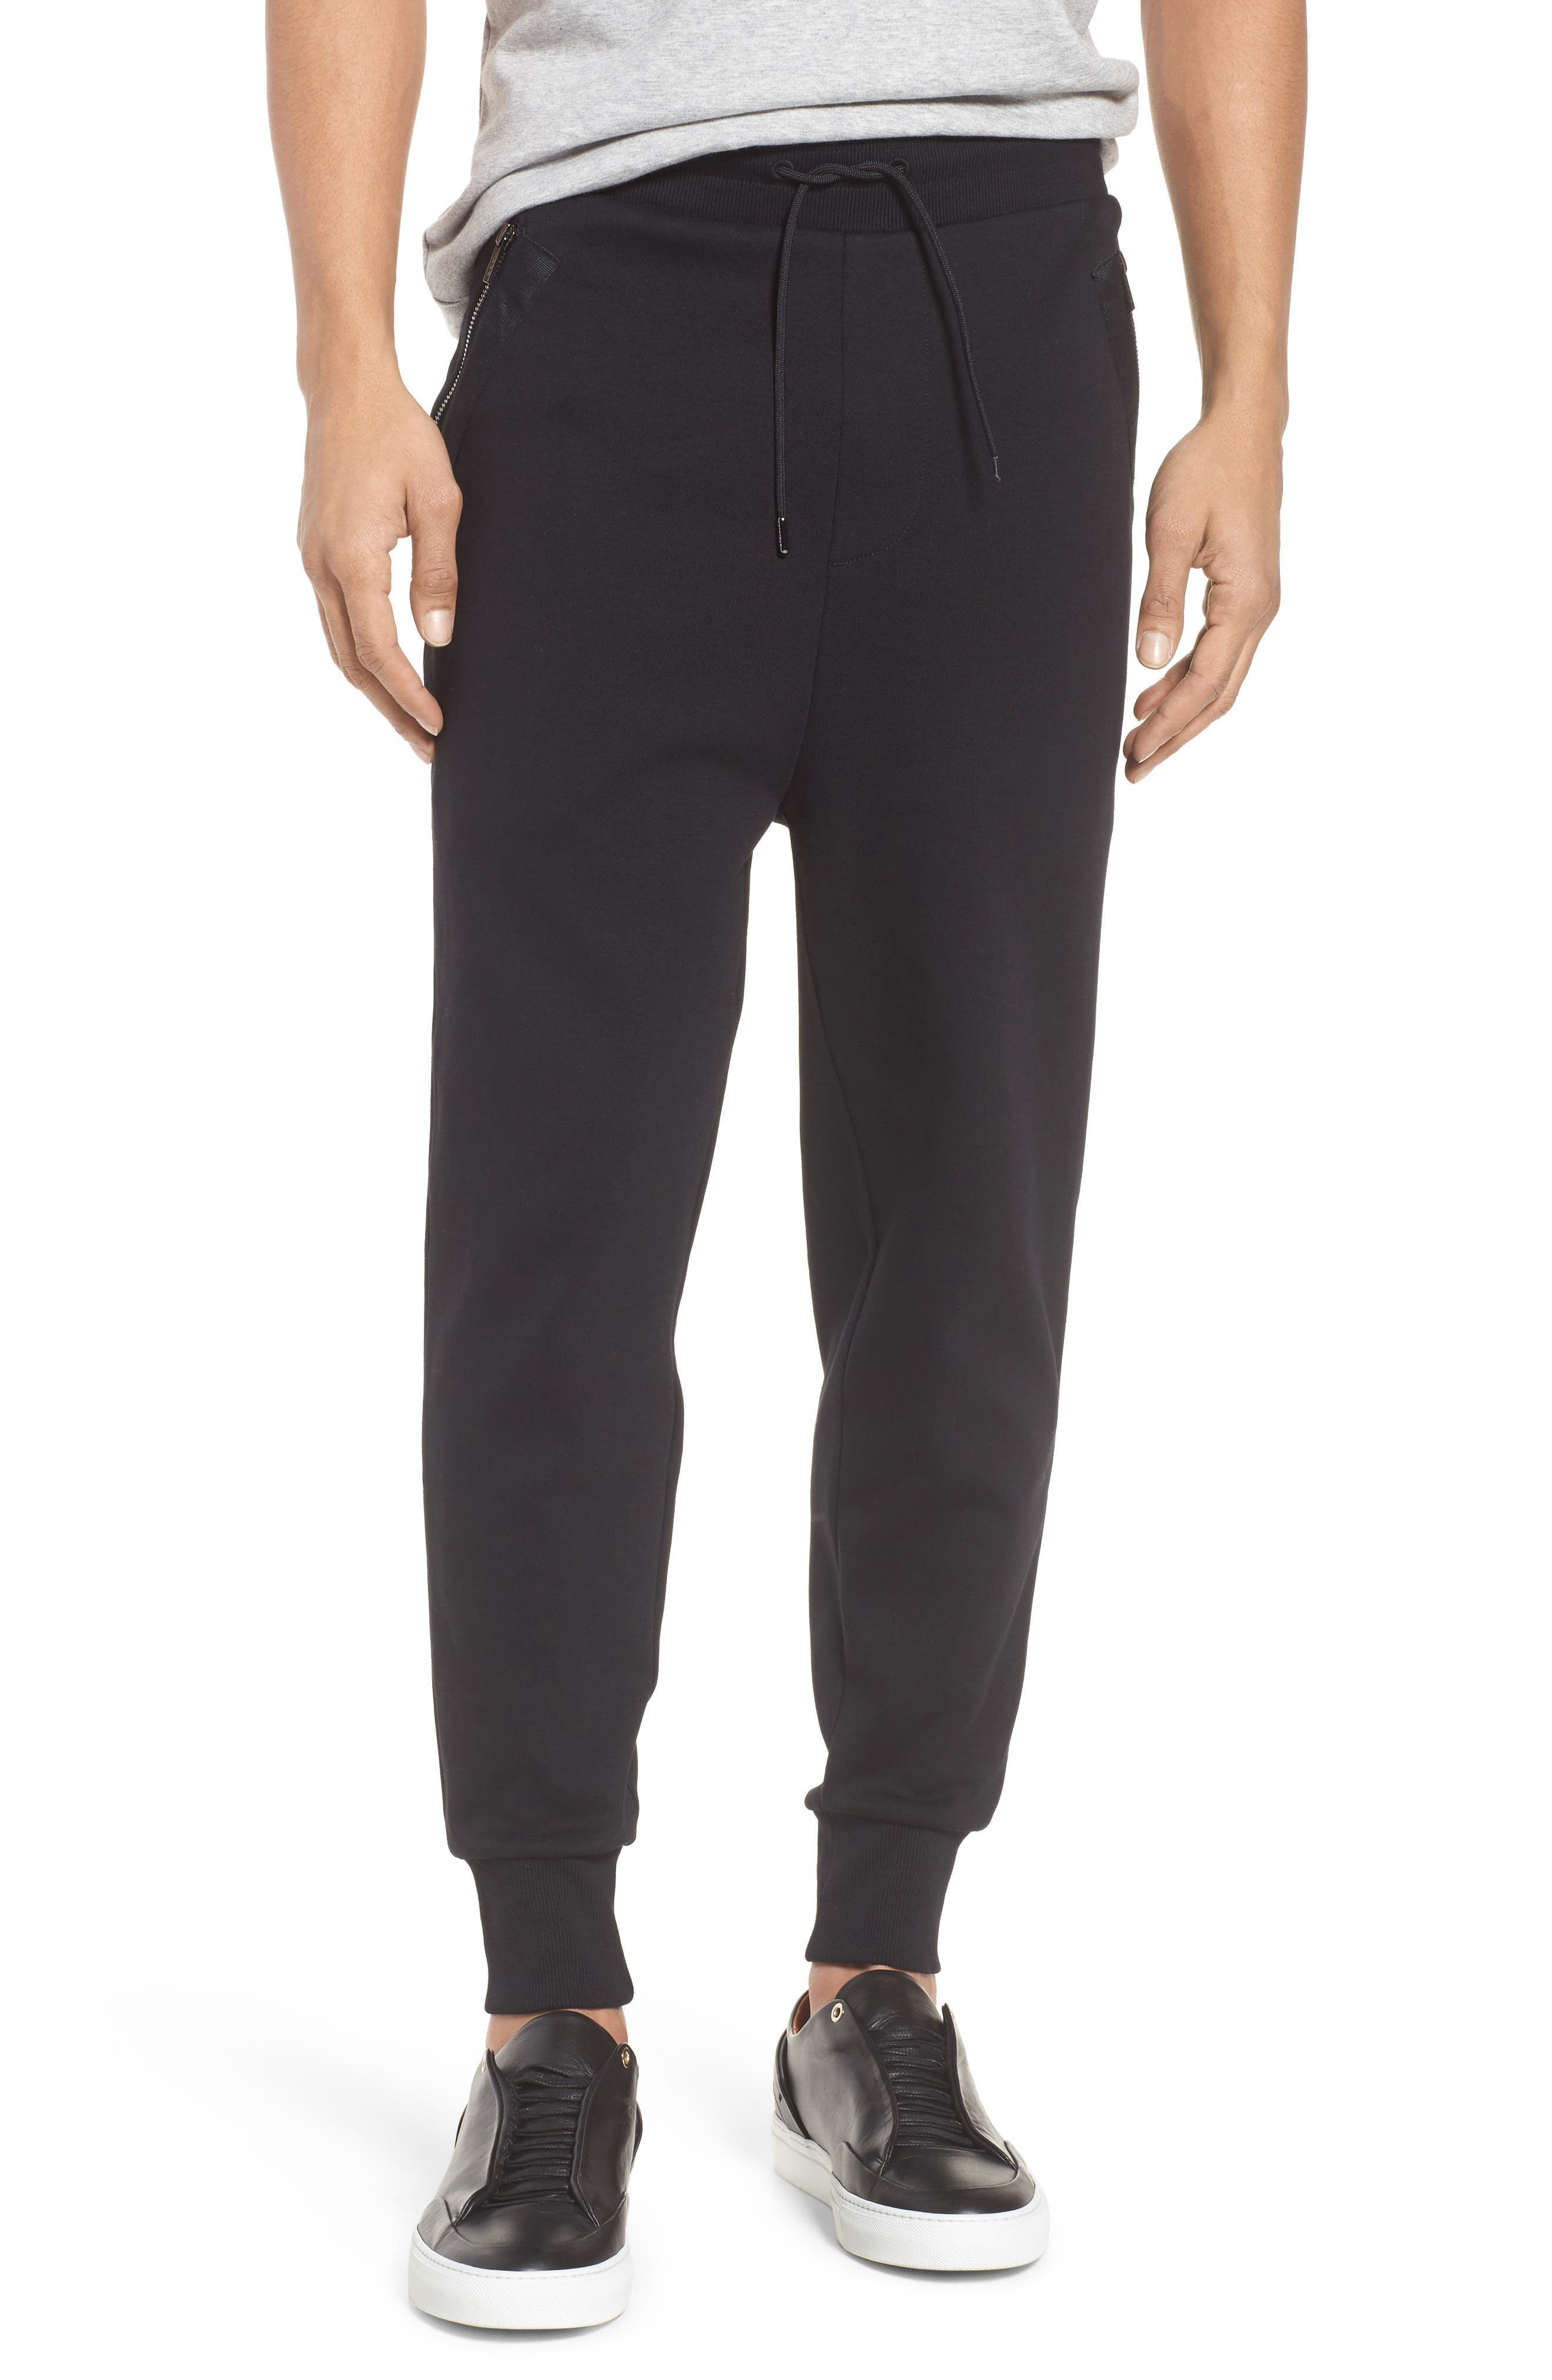 Daring Relaxed Fit Sweatpants,                         Main,                         color, 001